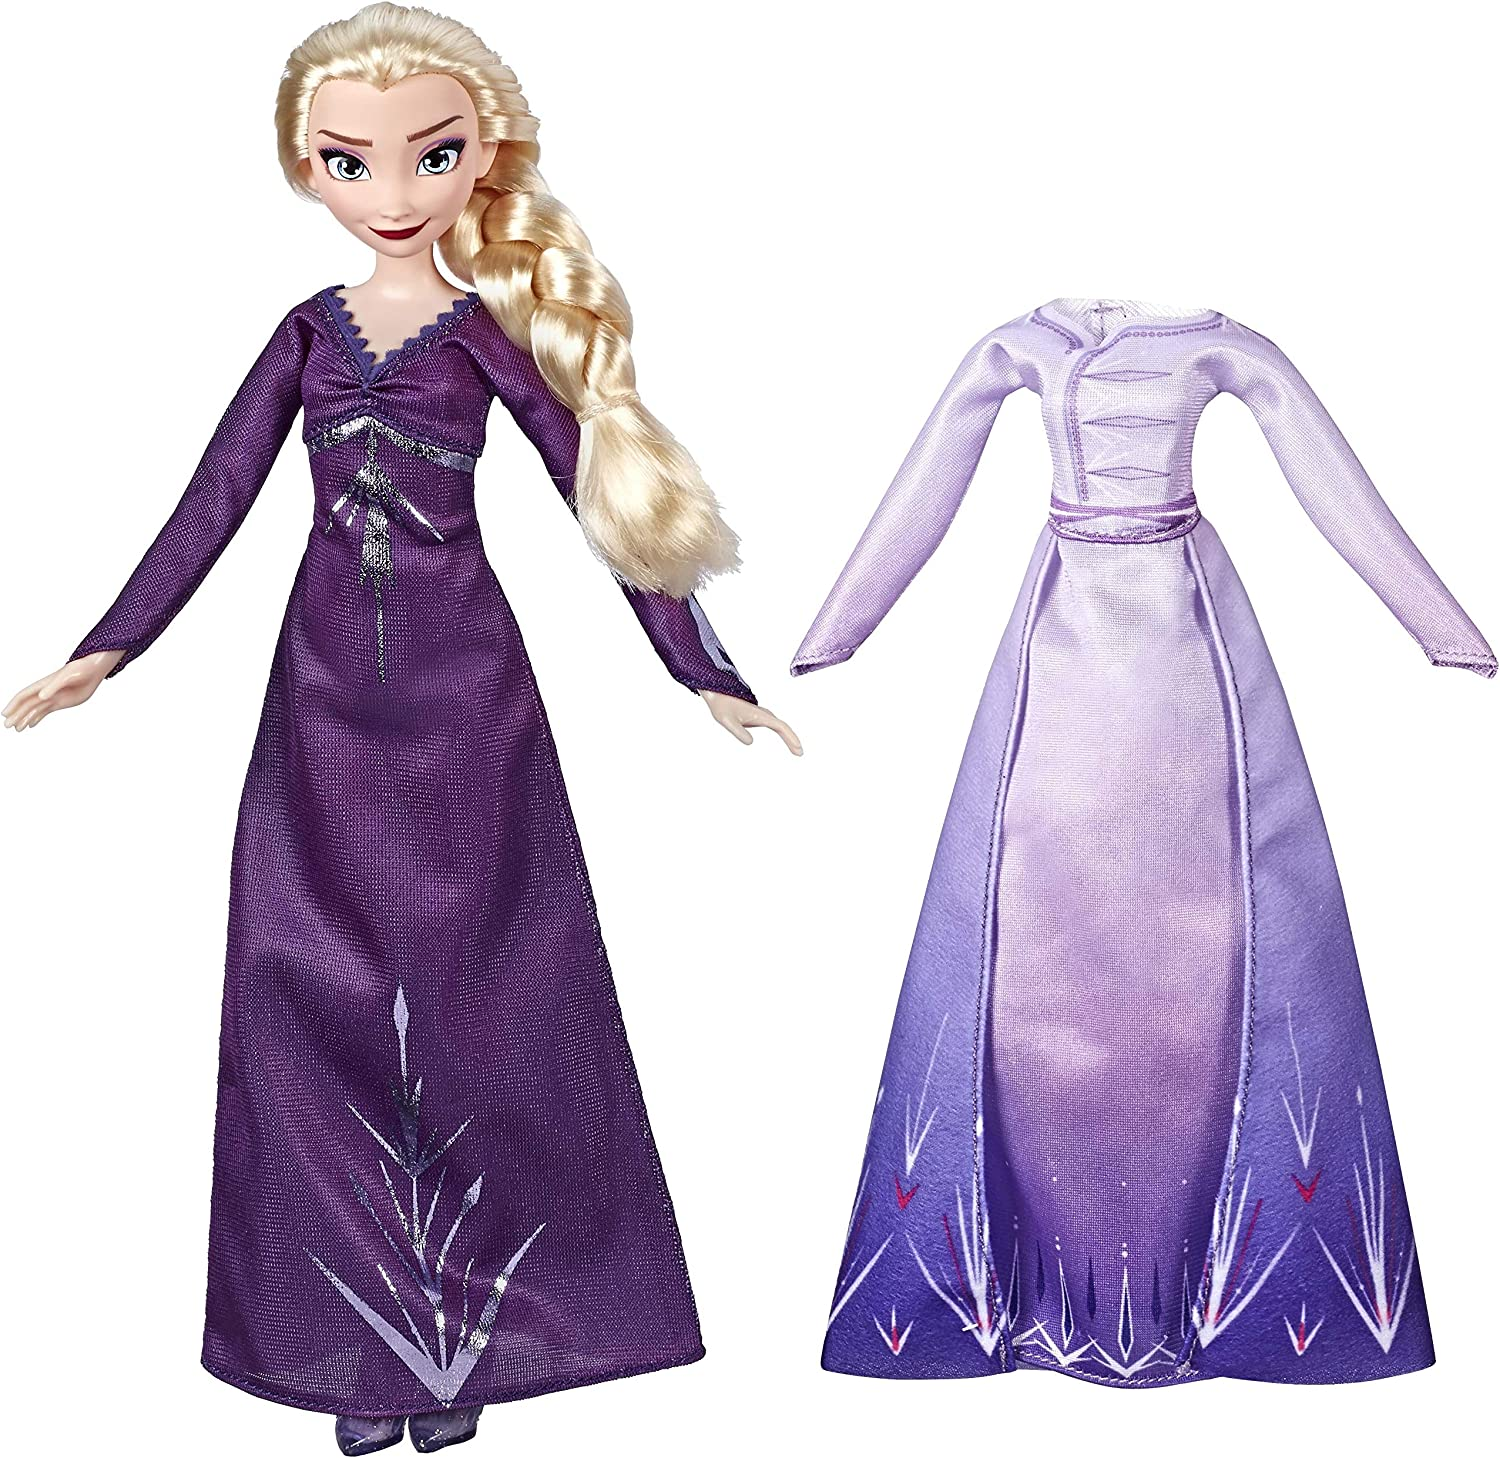 Amazon Com Disney Frozen Elsa Fashion Doll Inspired By Frozen 2 Toys Games